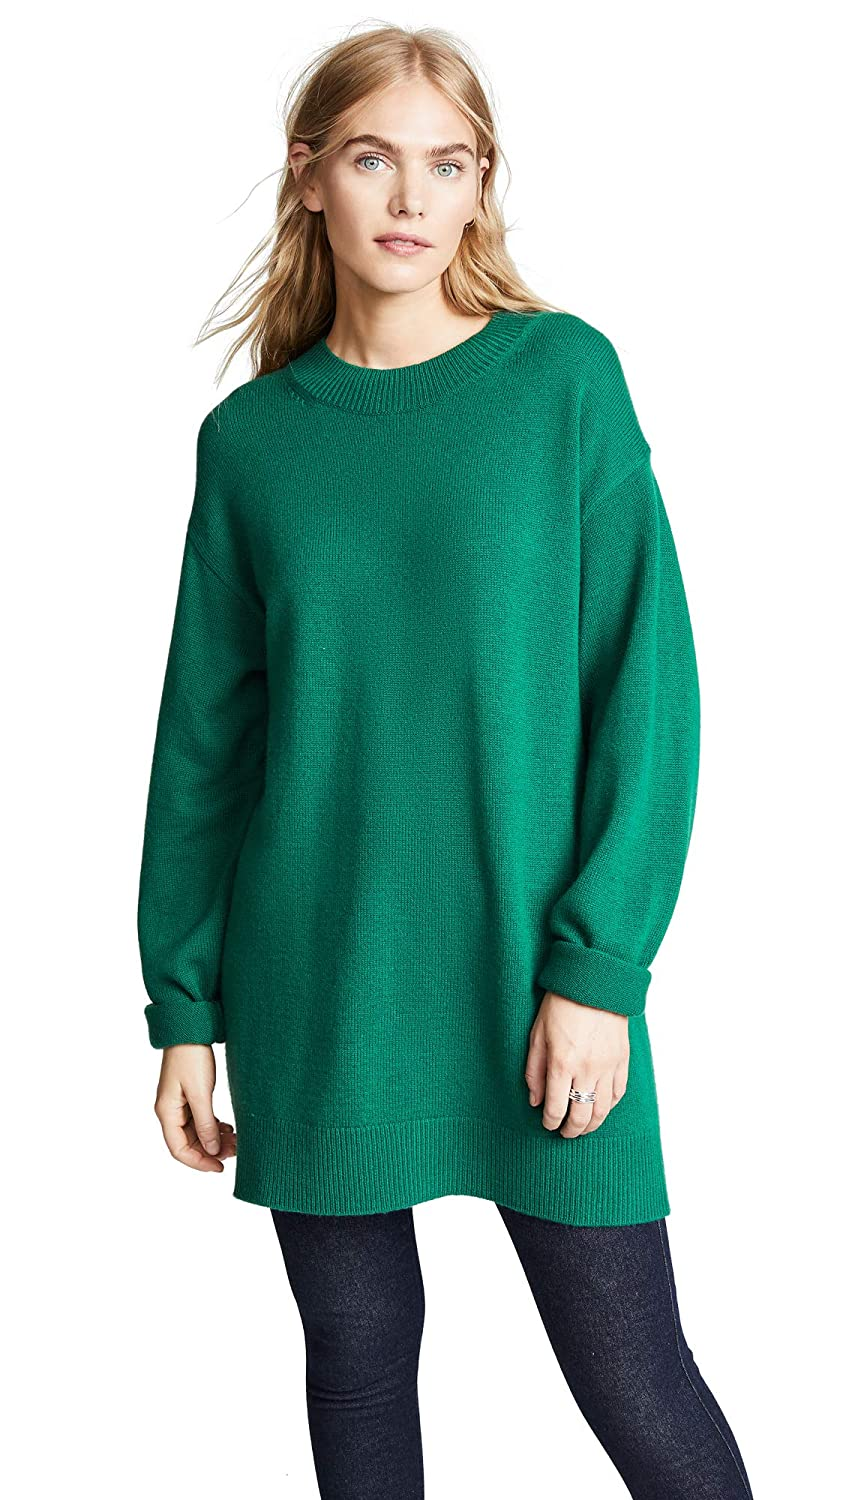 22423442c118 Ramy Brook Womens Liana Ribbed One Shoulder Pullover Sweater ...